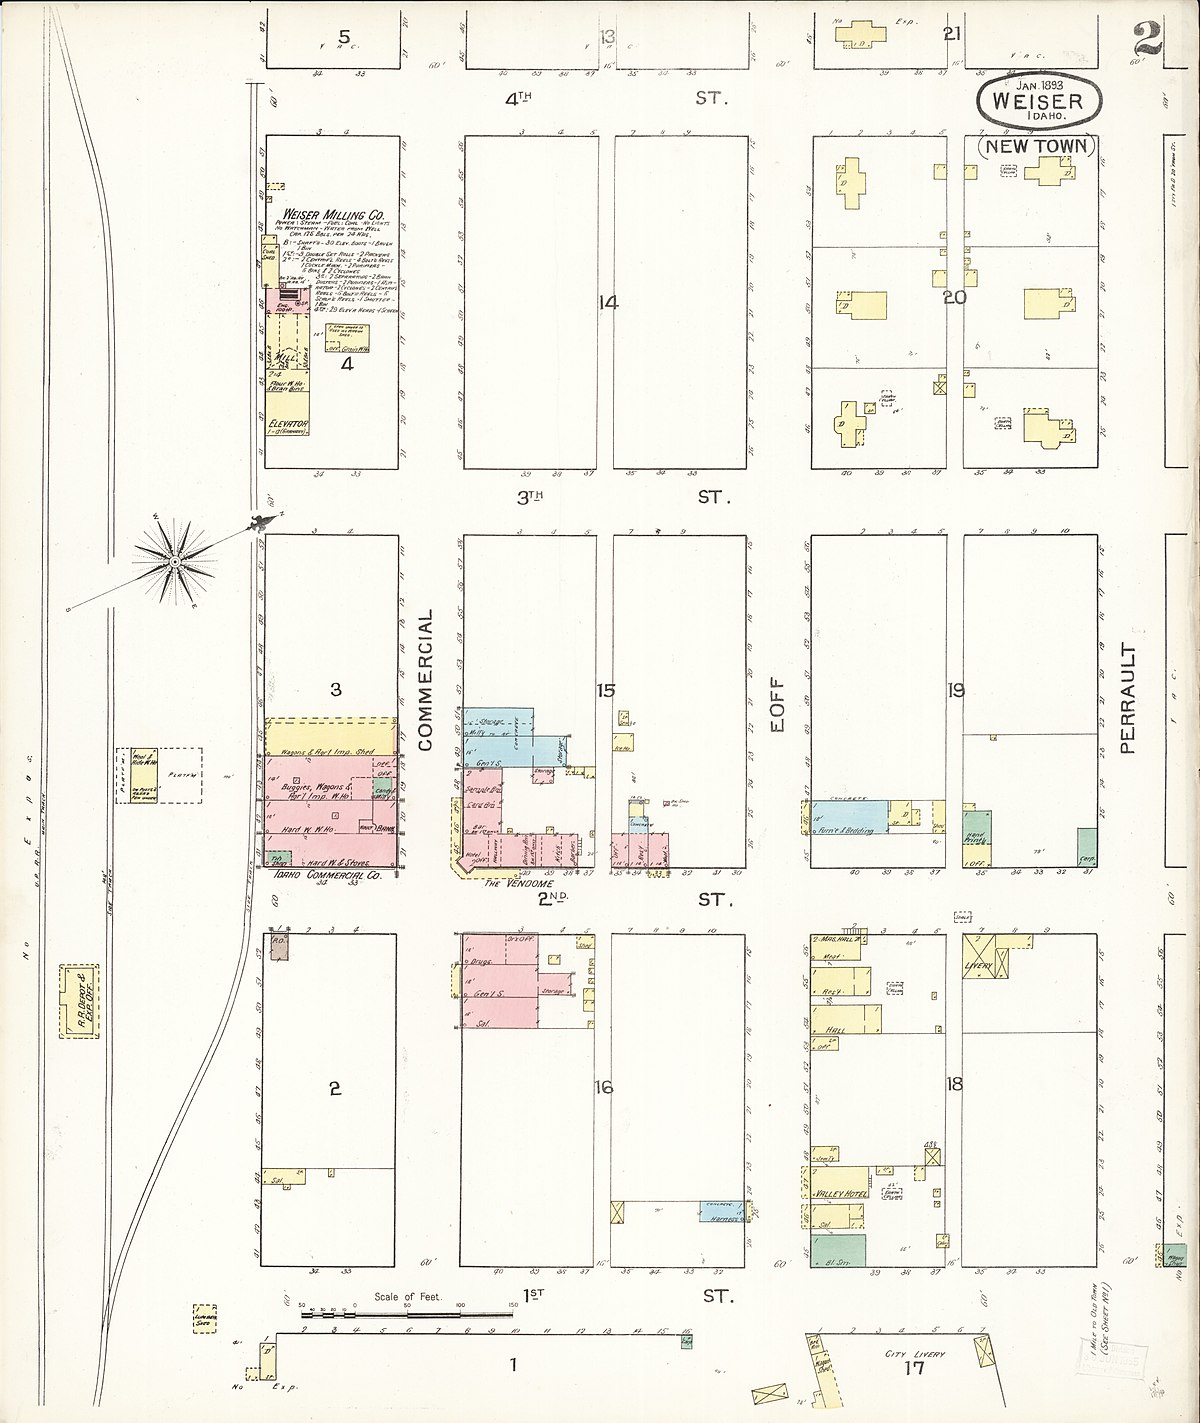 map of weiser idaho File Sanborn Fire Insurance Map From Weiser Washington County map of weiser idaho